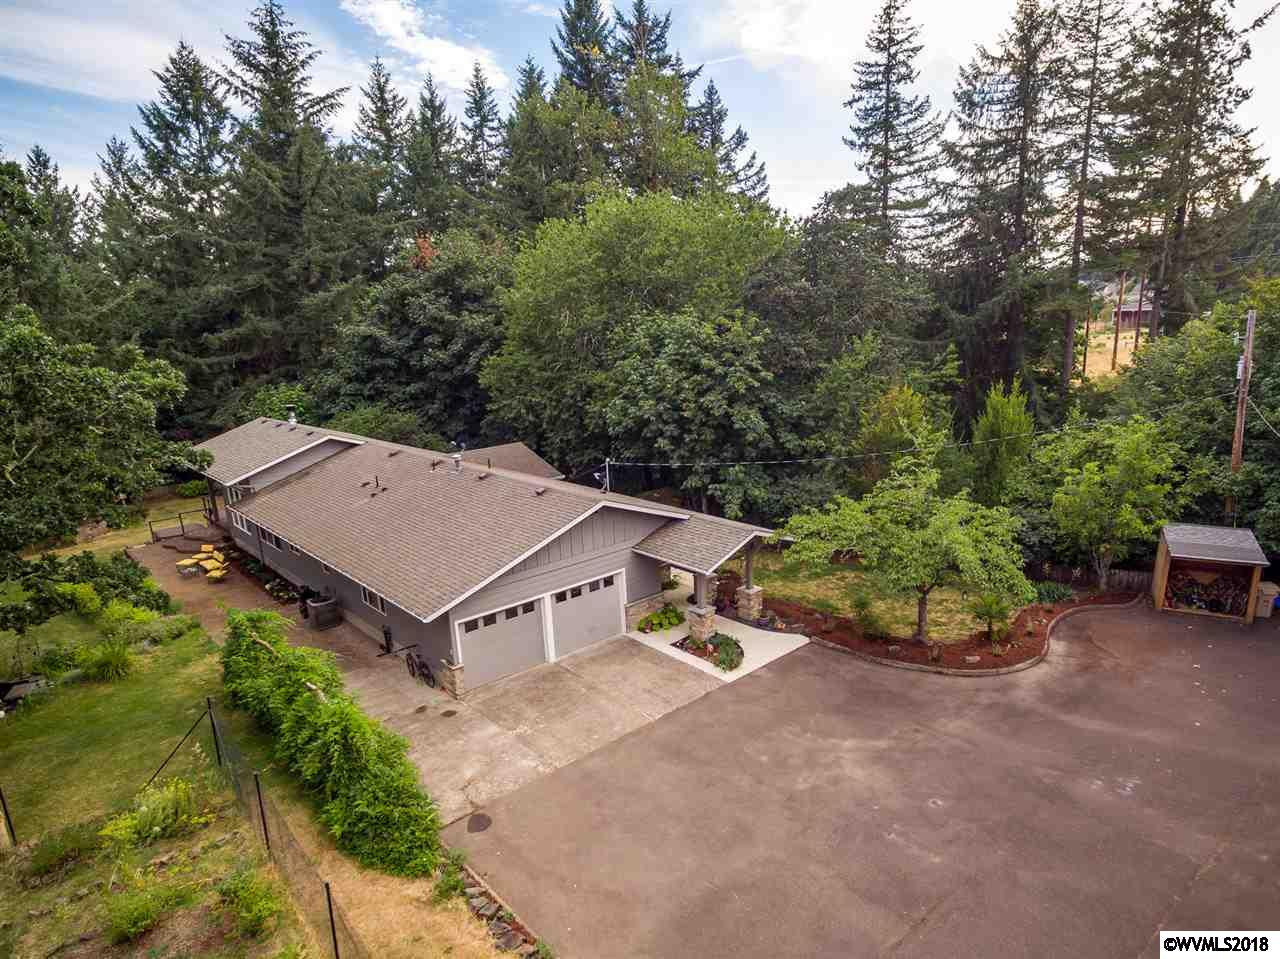 Price reduced! Complete 2016 remodel by Sierra Construction, exquisite & luxurious home is one of a kind. Set down a private gated drive and on over 3 acres with edge-of-the-world views of Willamette Valley & mountain ranges; you're surrounded by nature. Hdwd floors, vaulted ceilings, stone fp, picture windows in living & dining rms. Custom cabinets, granite counters, SSA and island in kitchen, custom cabinets, granite counters in baths. Office may be 3rd BR. Covered deck, hot tub, koi pond, RV pkg, sheds